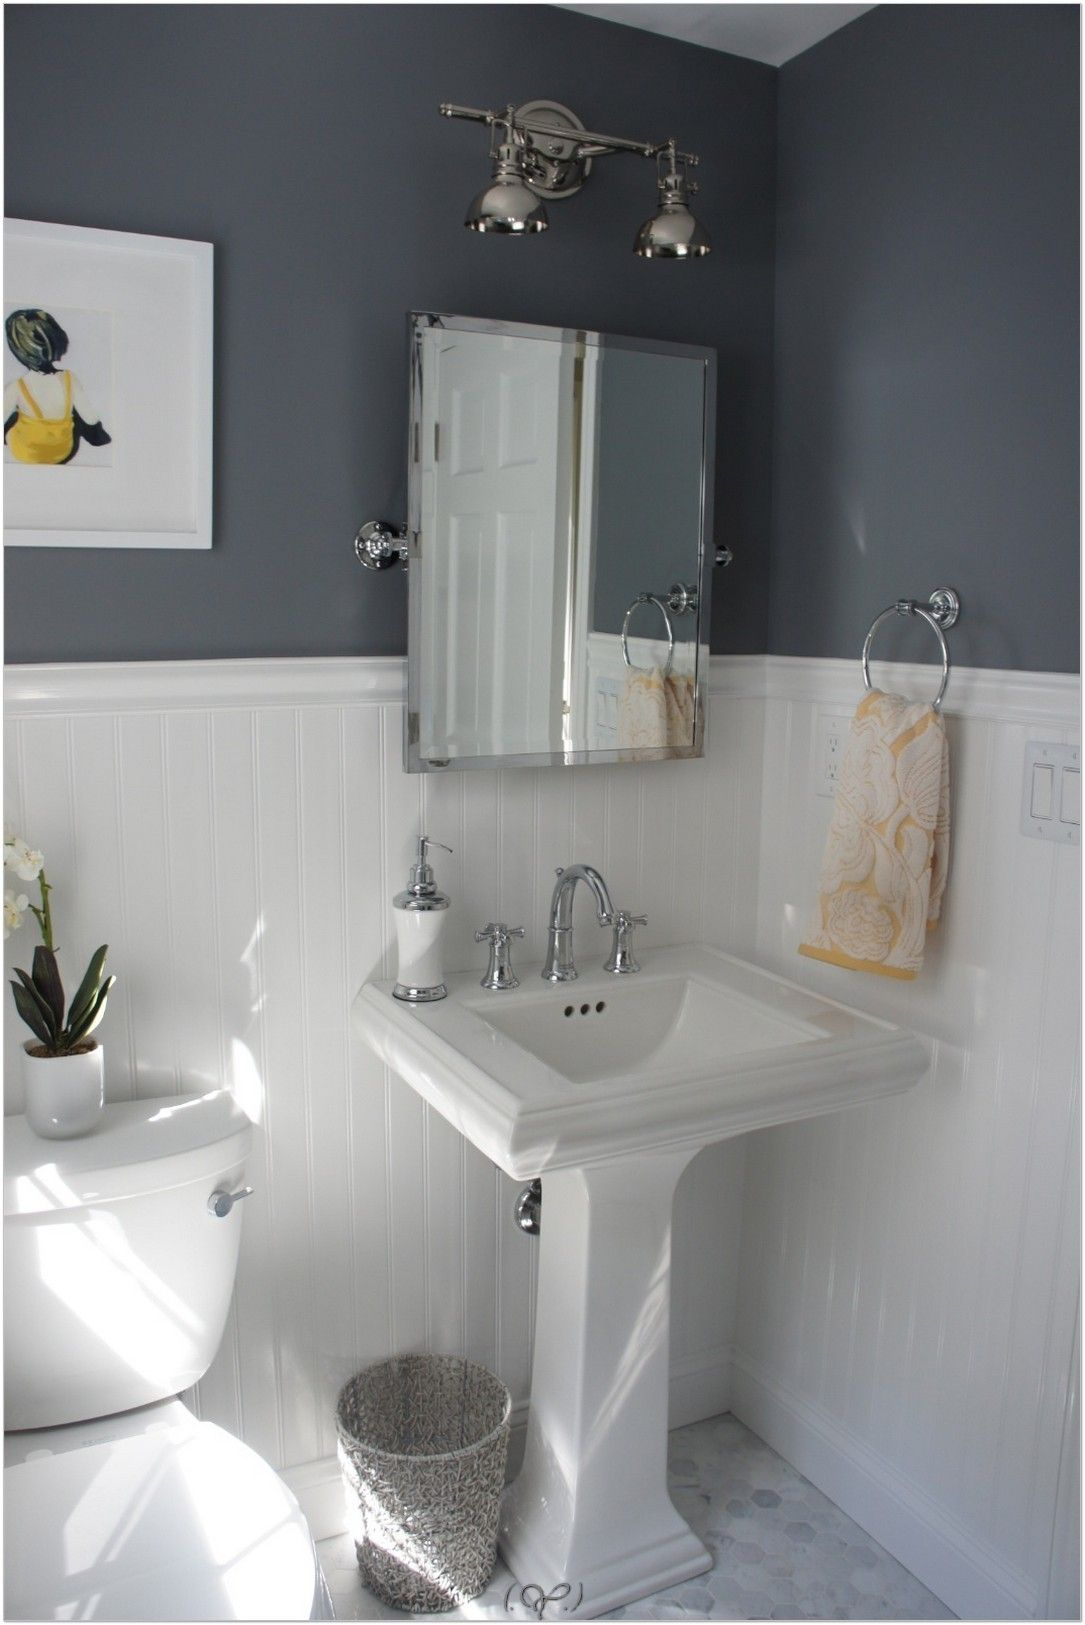 26 half bathroom ideas and design for upgrade your house in 2019 bathroom design ideas